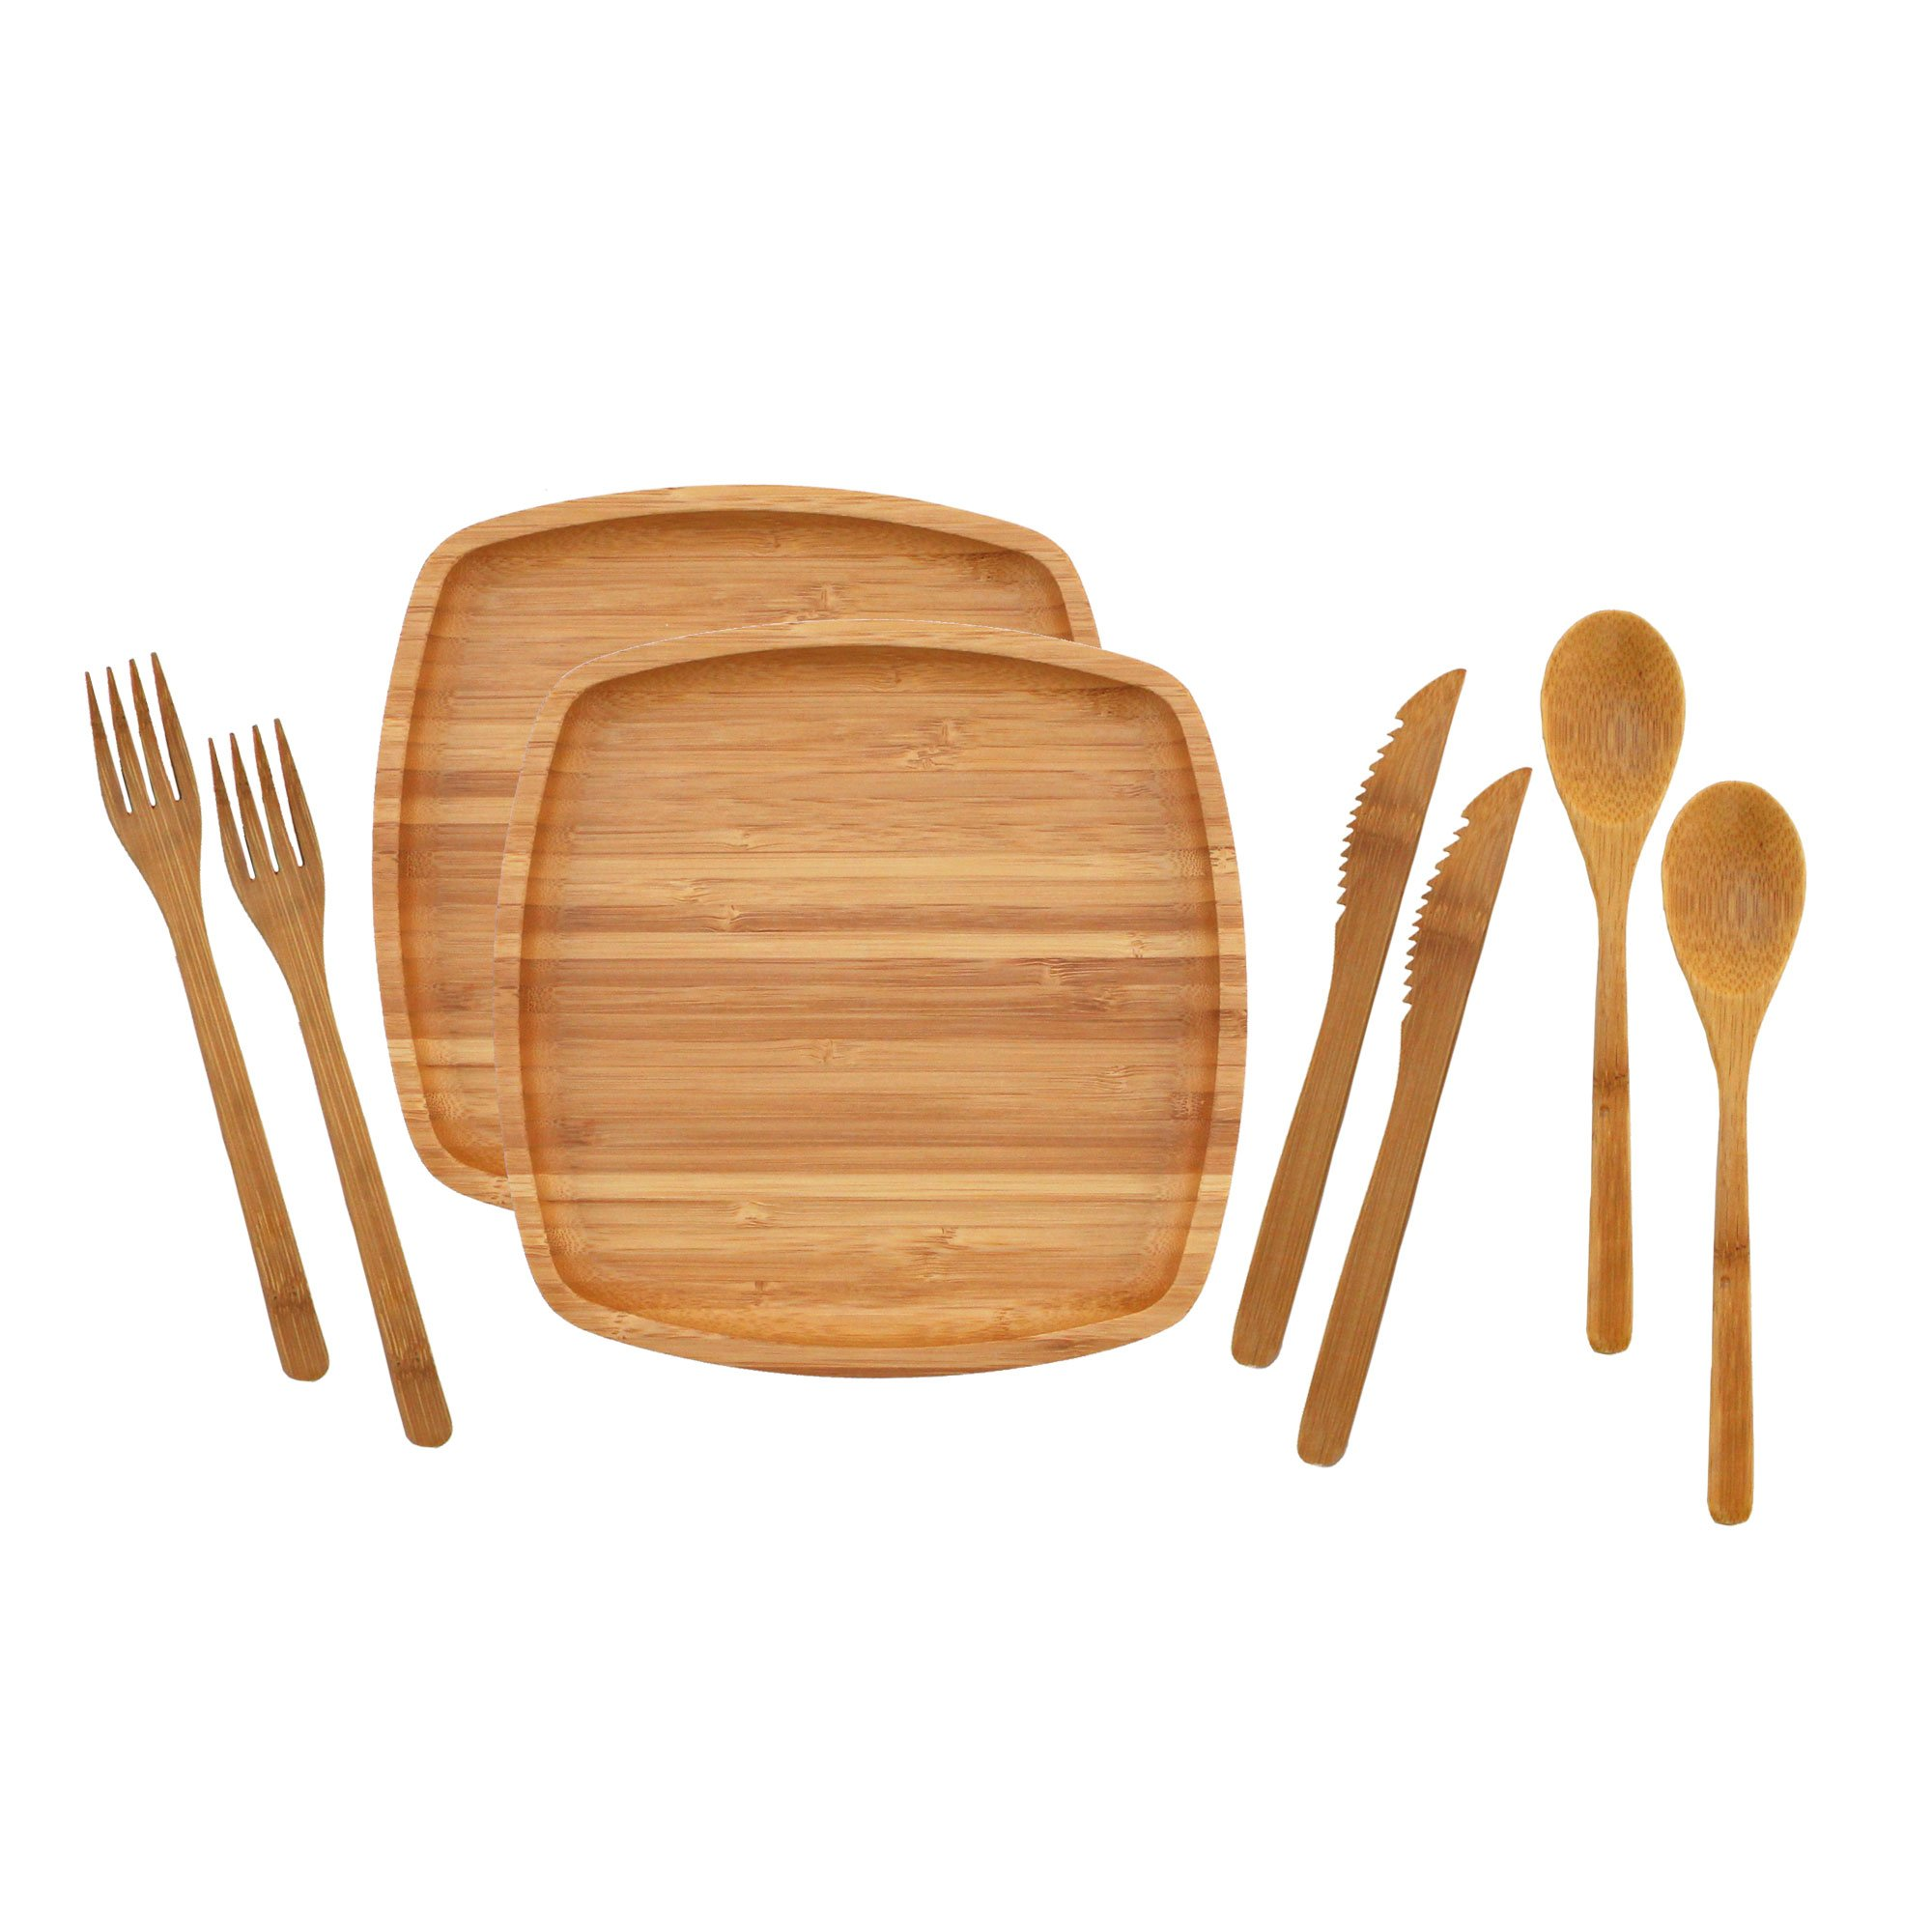 BambooMN Camping Mess Kit Lightweight Organic 8'' x 8'' Bamboo Plates, Forks, Knifes and Spoons for Camping, Hiking, or Backpacking - 2 Sets